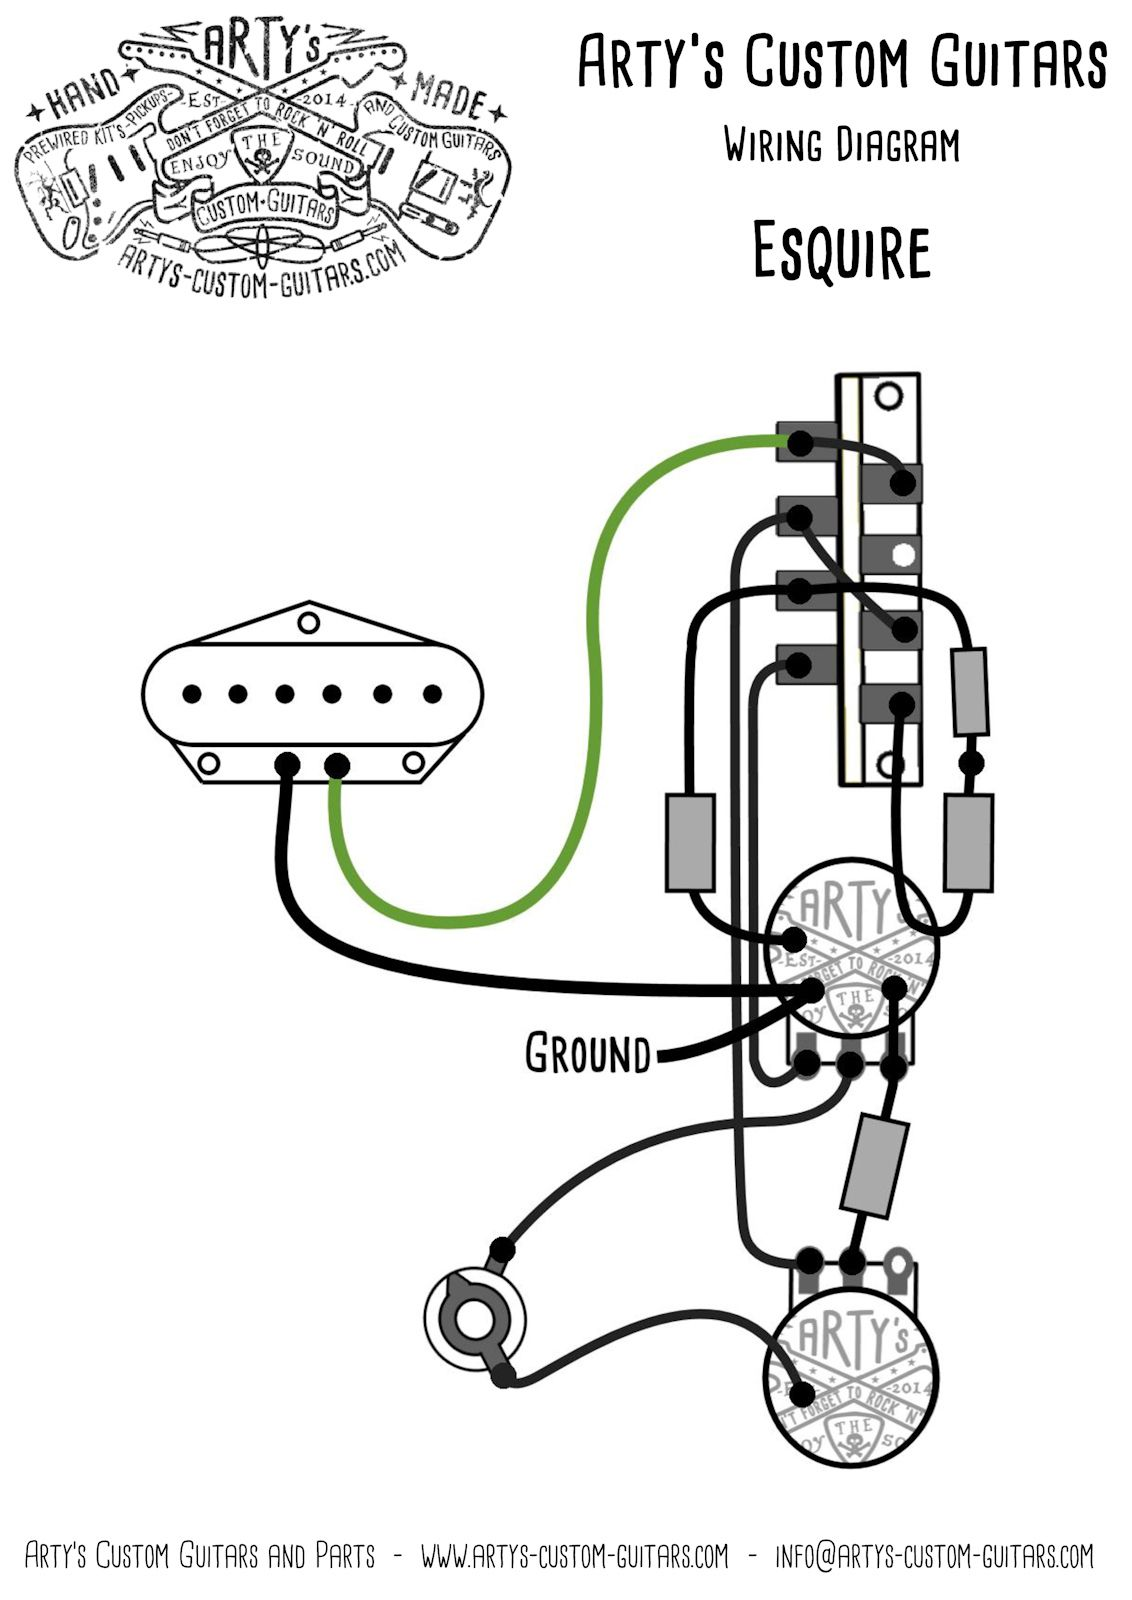 Esquire Wiring Diagram Prewired Kit Artys Custom Guitars Fender 1959 Precision Bass